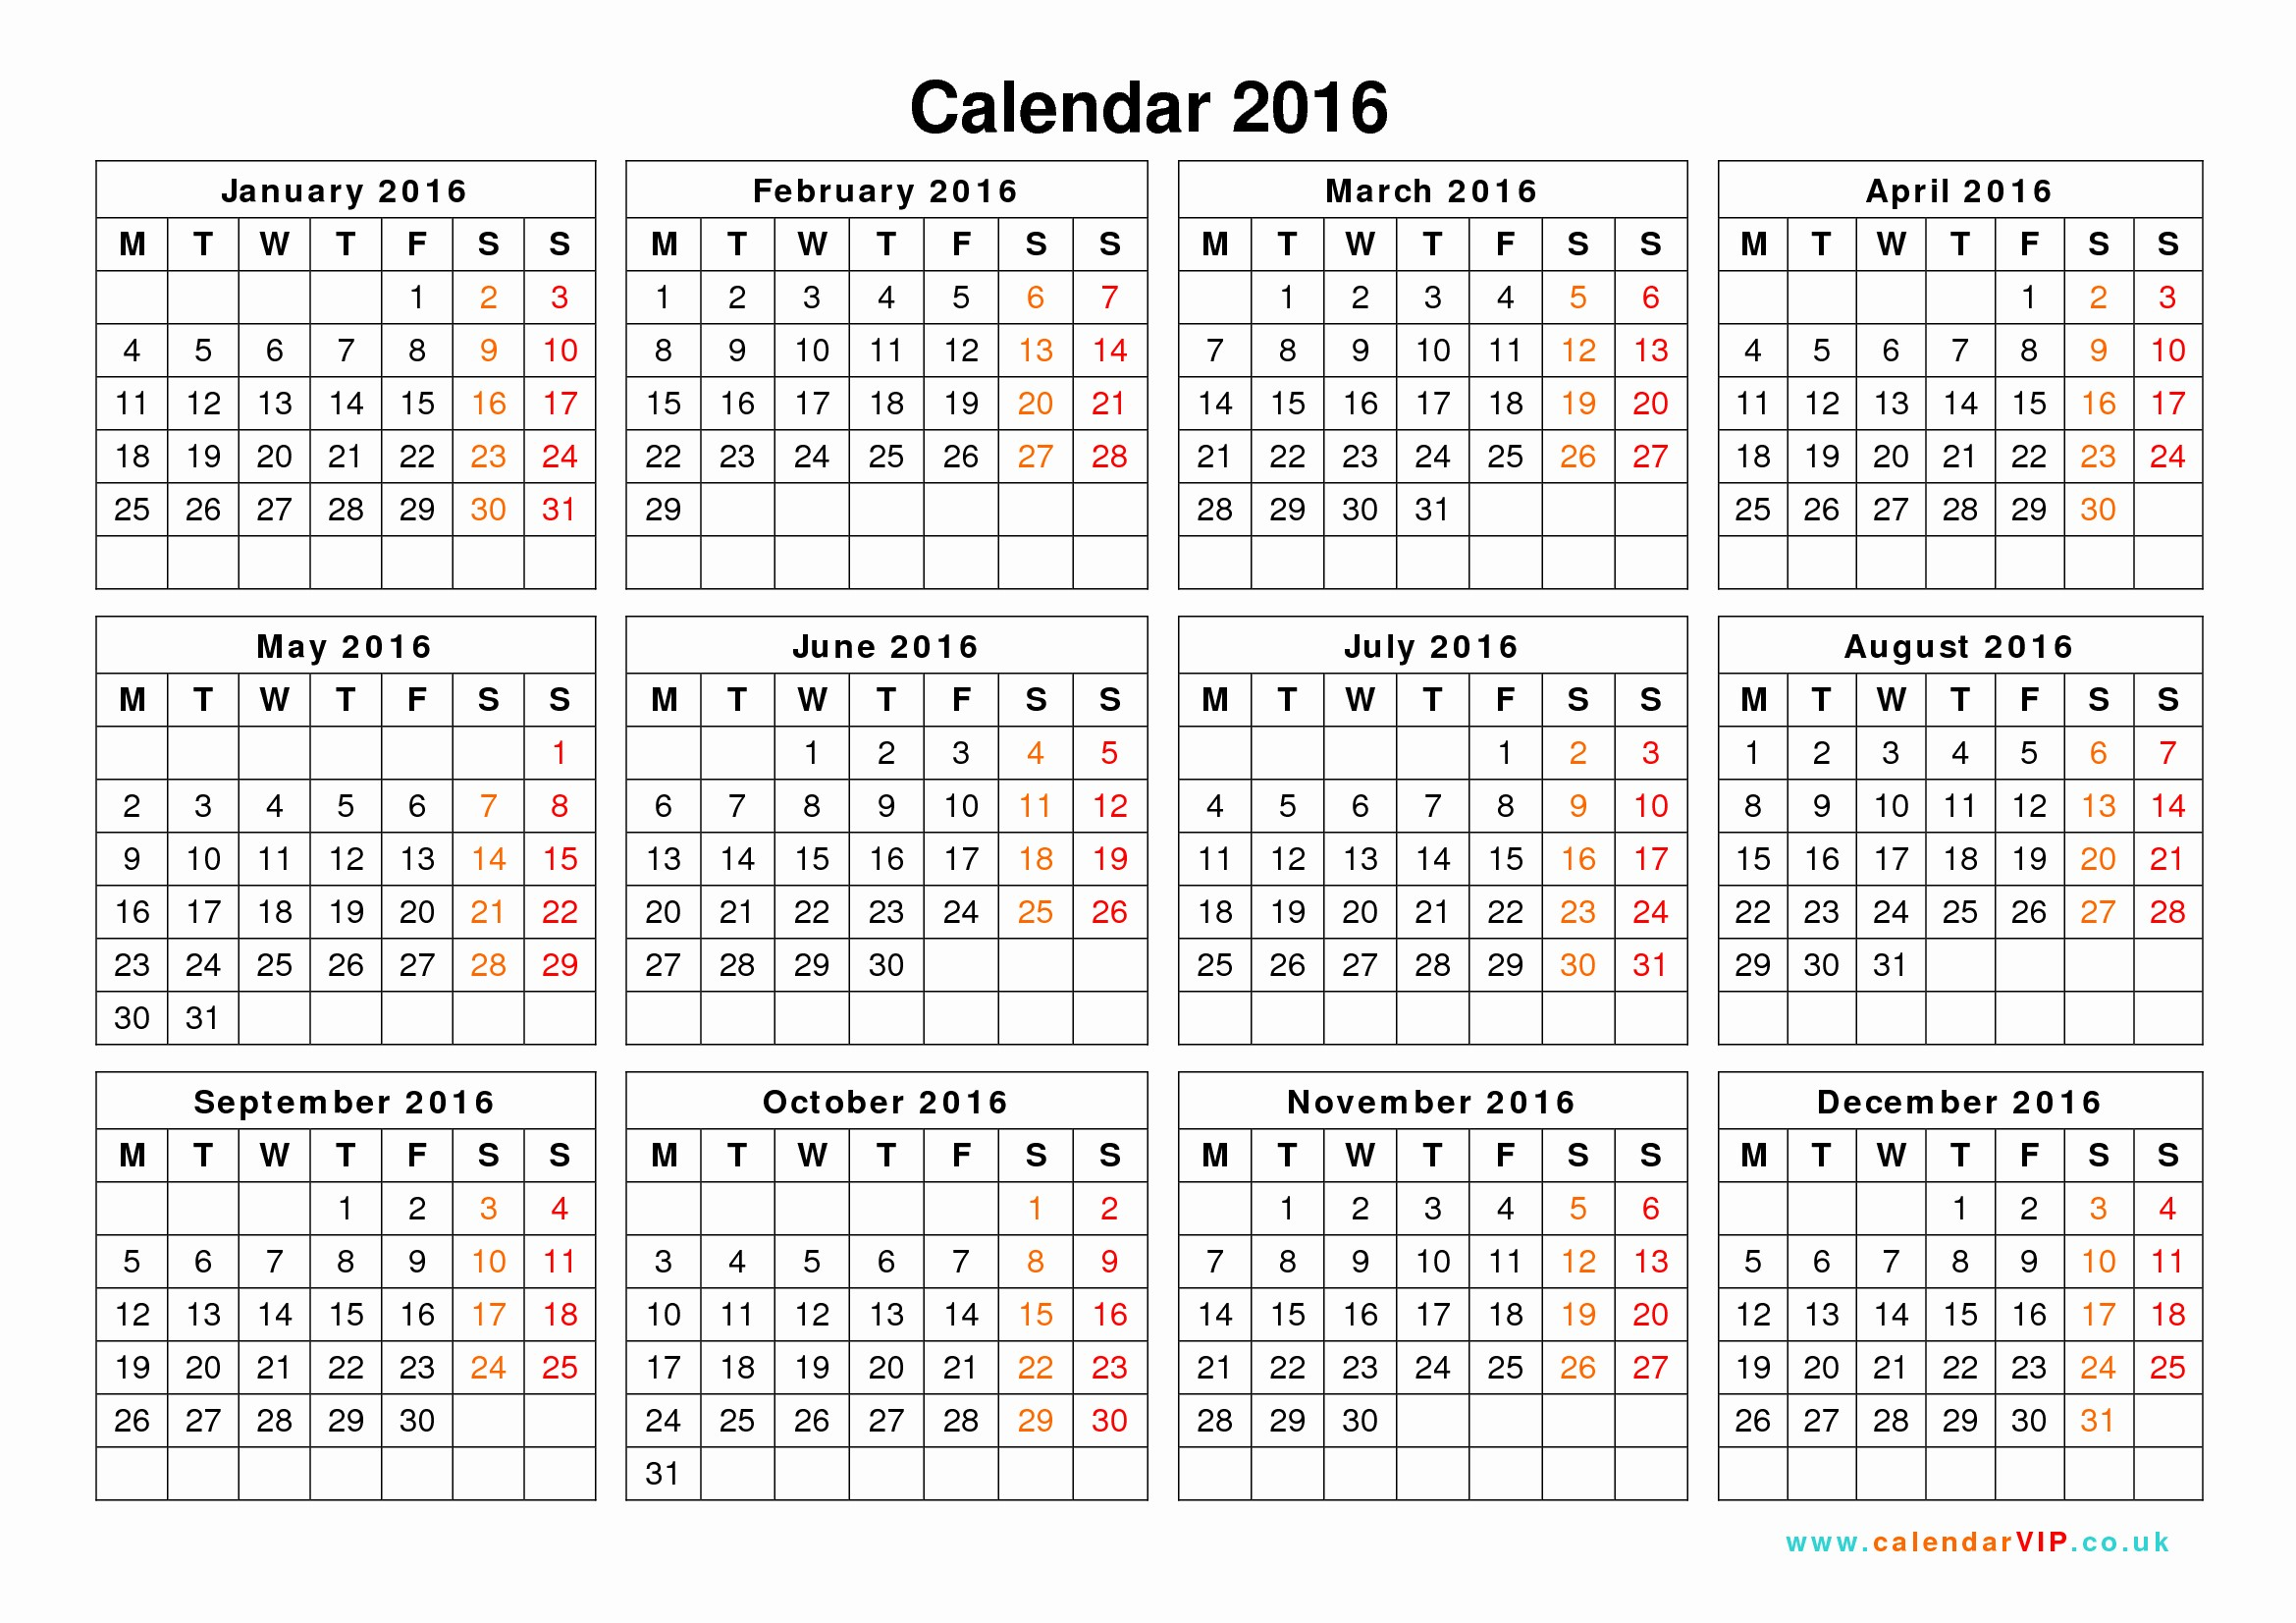 Free Printable Calendar 2016 Template Awesome Calendar 2016 Uk Free Yearly Calendar Templates for Uk